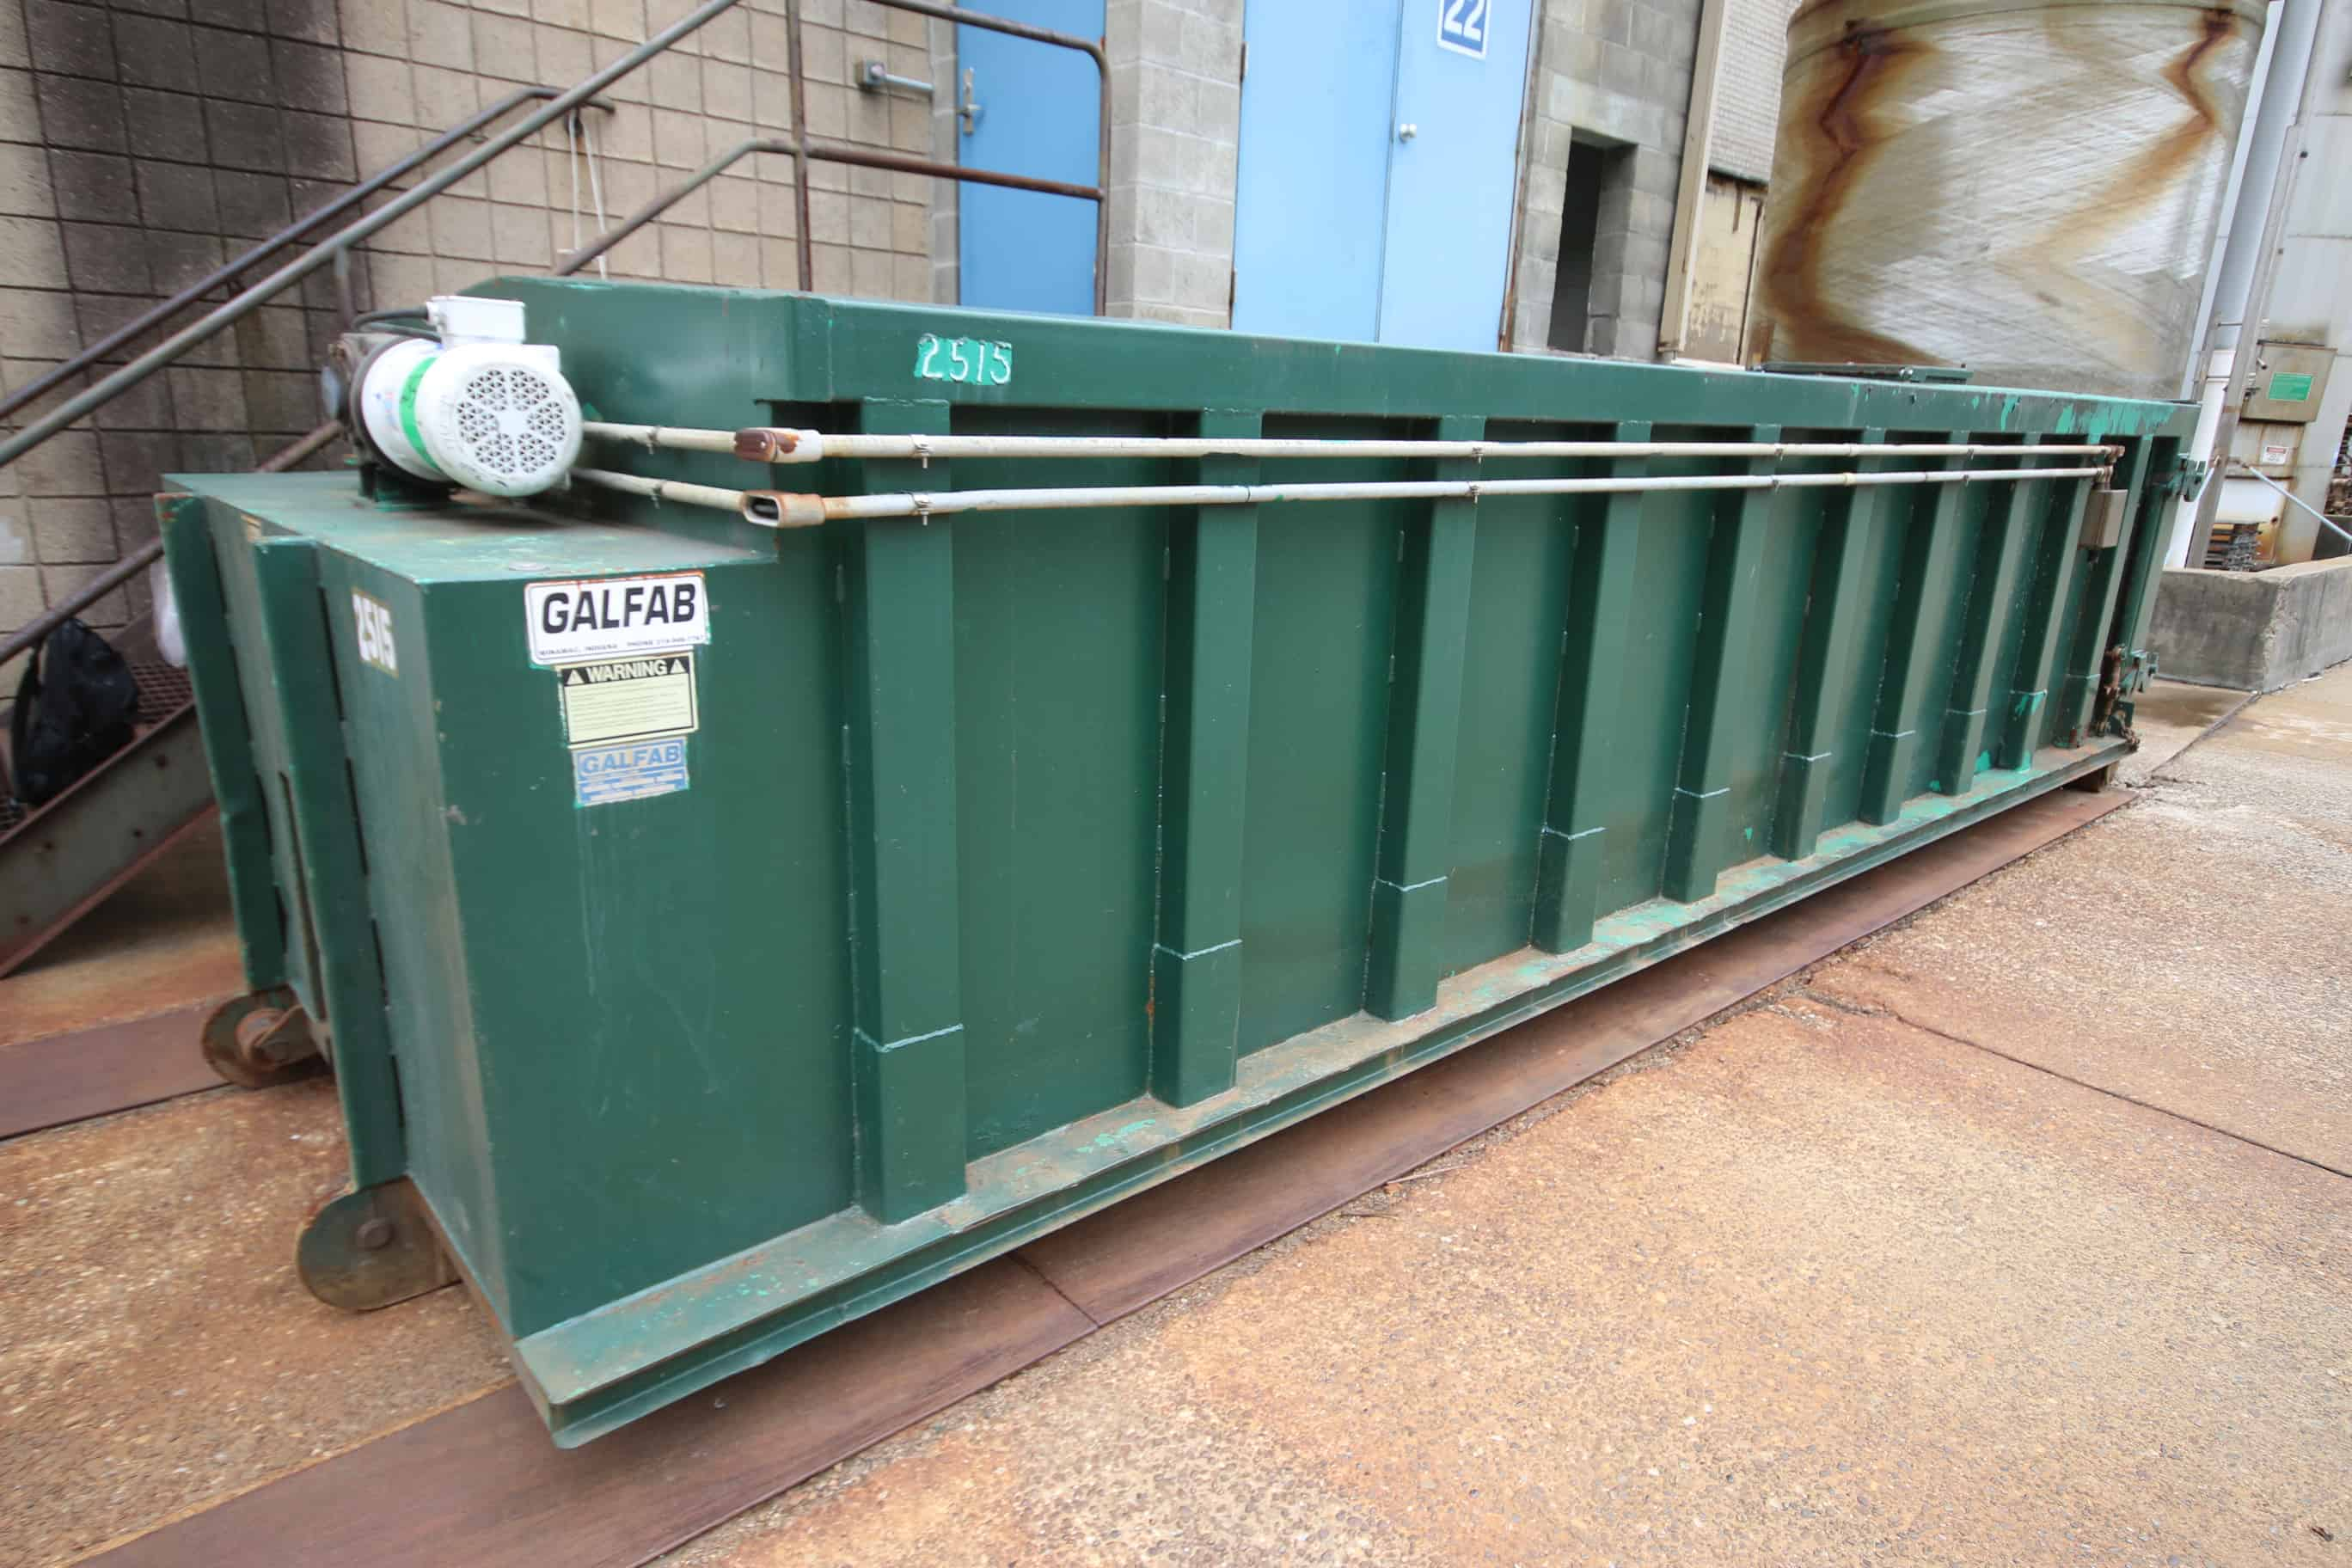 "Galfab 20 Cubic Yard Enclosed Waste Container, Model OS2244, SN 2515, with Top Mounted Hinged Door &Top Mounted Power Auger, (Box Diam. 22 ft L x 7 ft W x 64"" H) (Rebuilt 2017)"